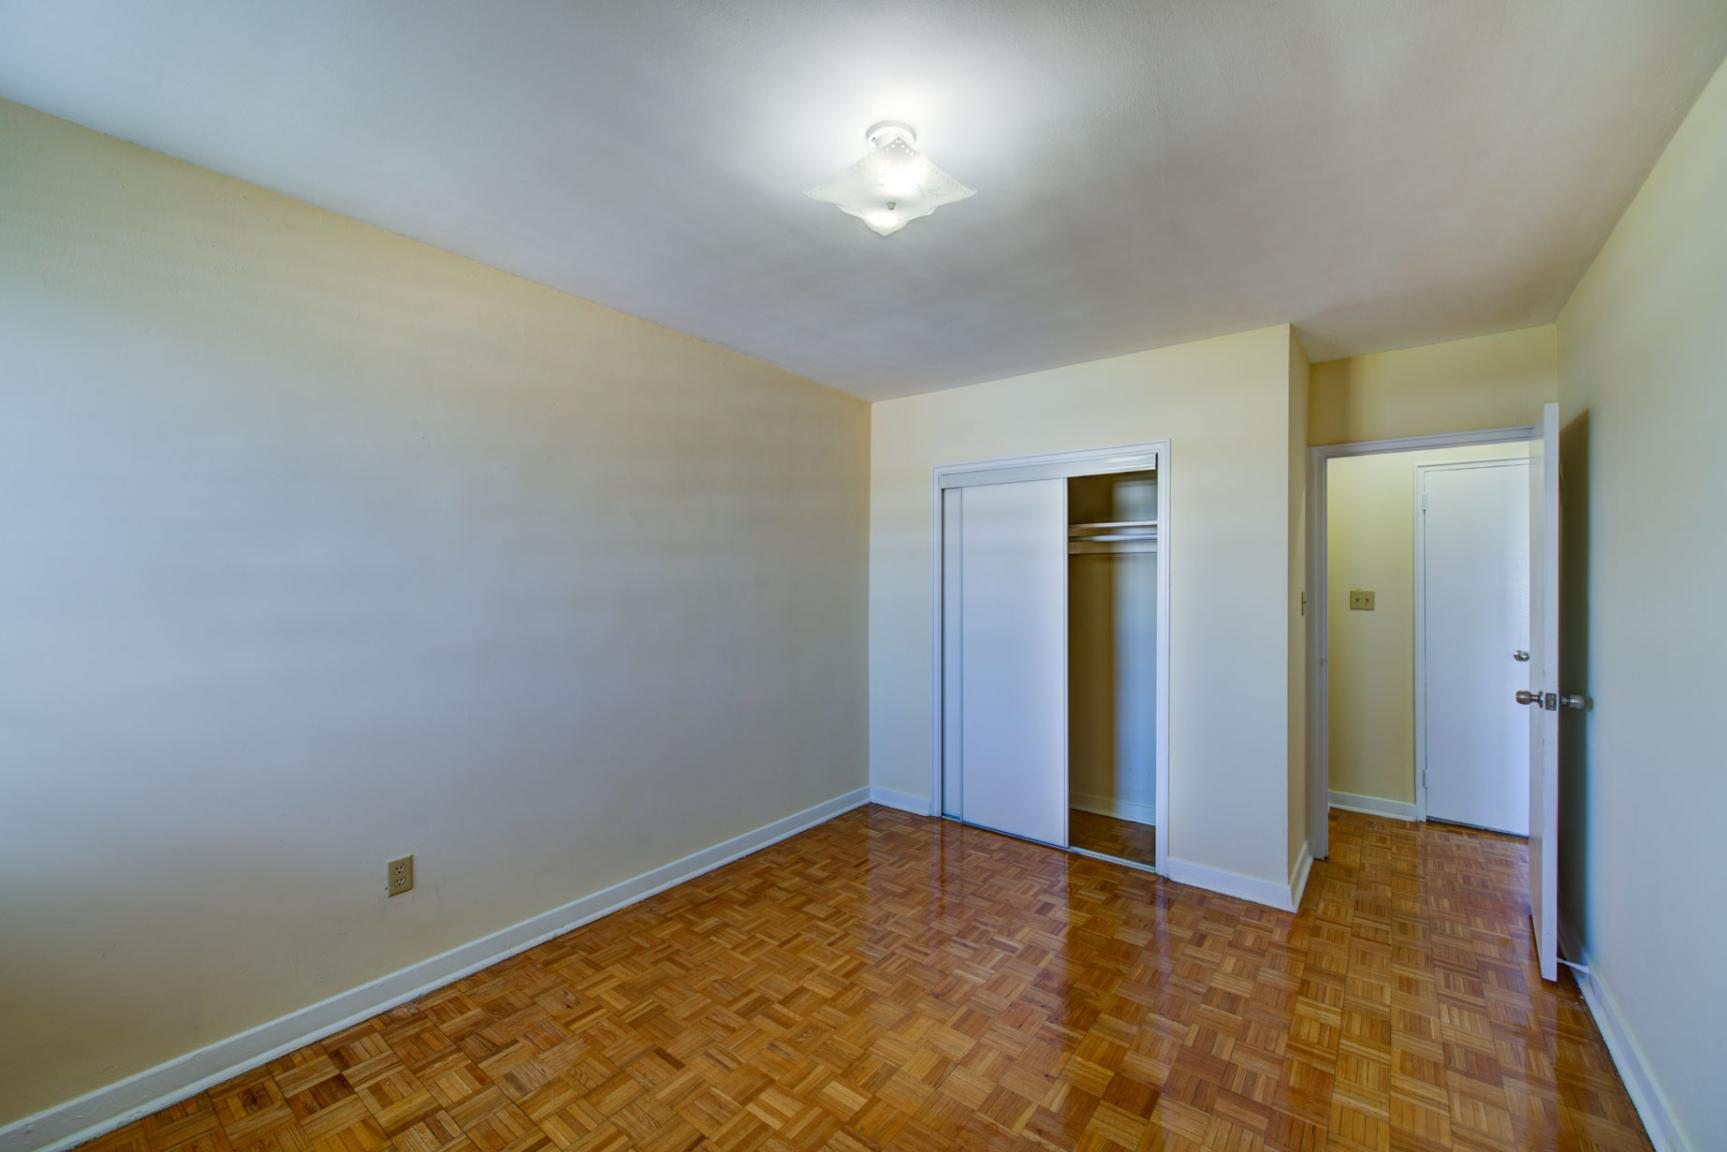 1 bedroom Apartments for rent in Toronto at Lake Promenade Community - Photo 20 - RentersPages – L140453